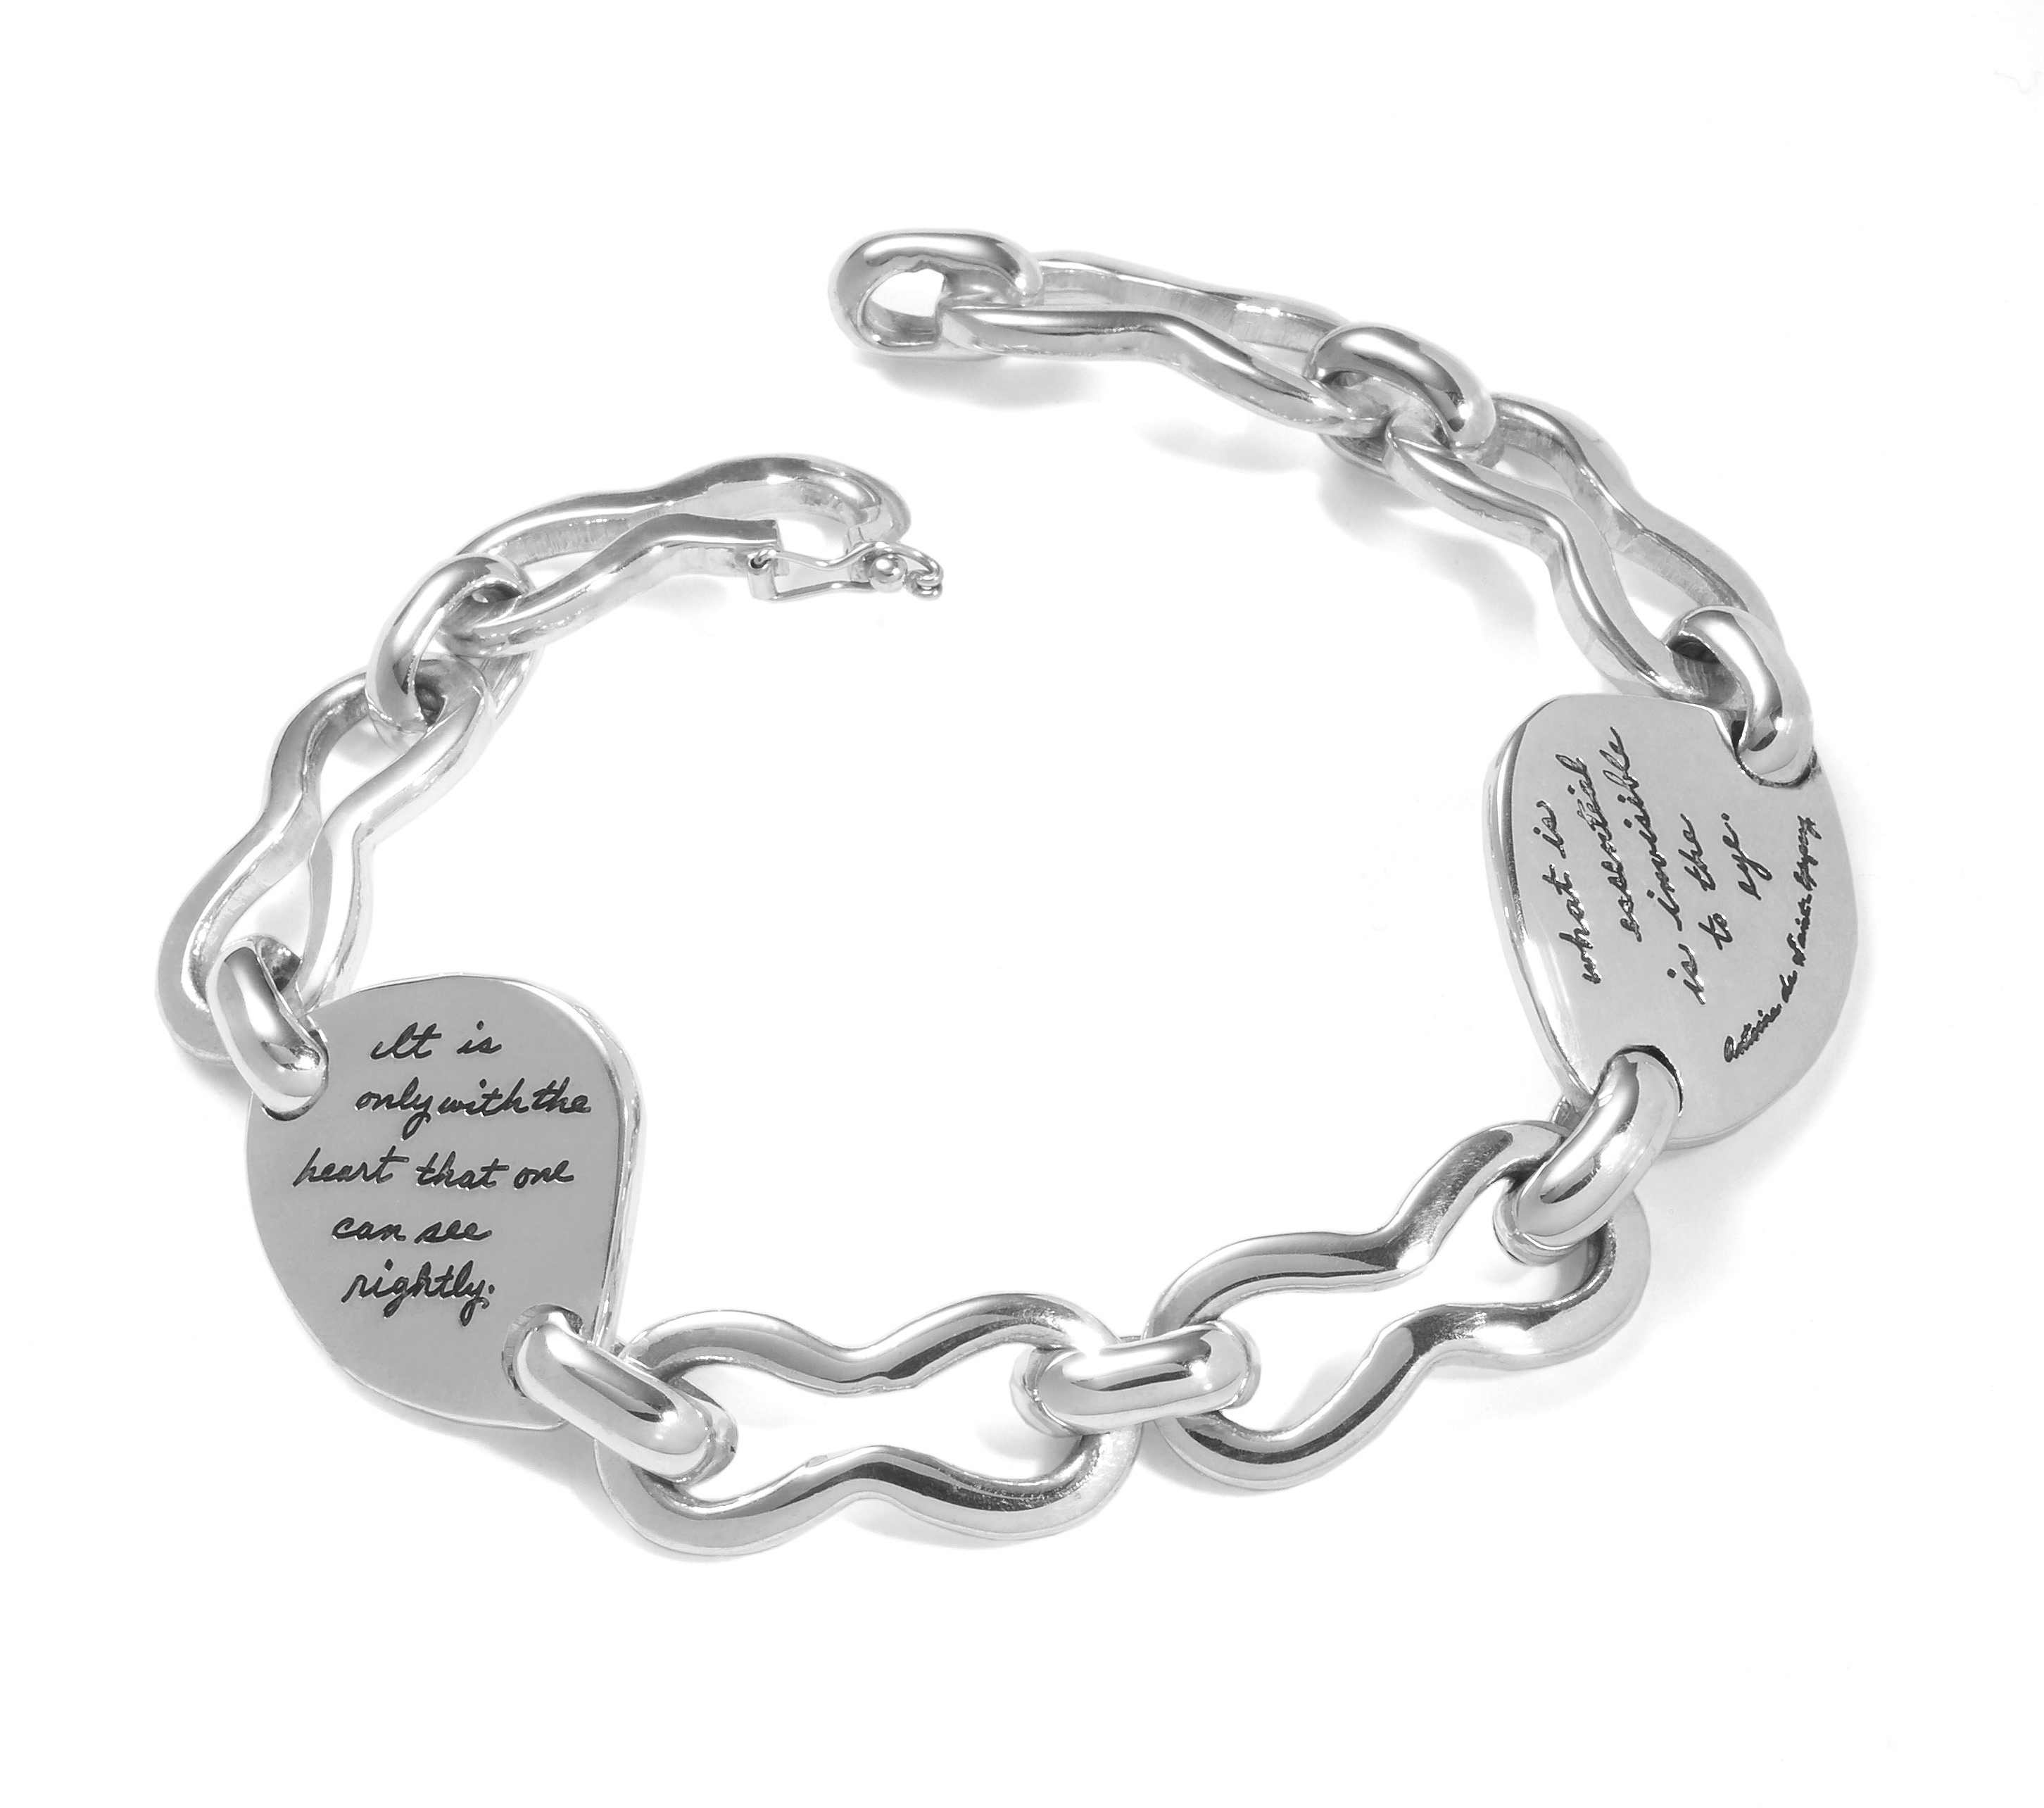 Famous quote from The Little Prince enhances BB Becker link bracelet with engraving - It is only with the heart that one can see rightly; what is essential is invisible to the eye.